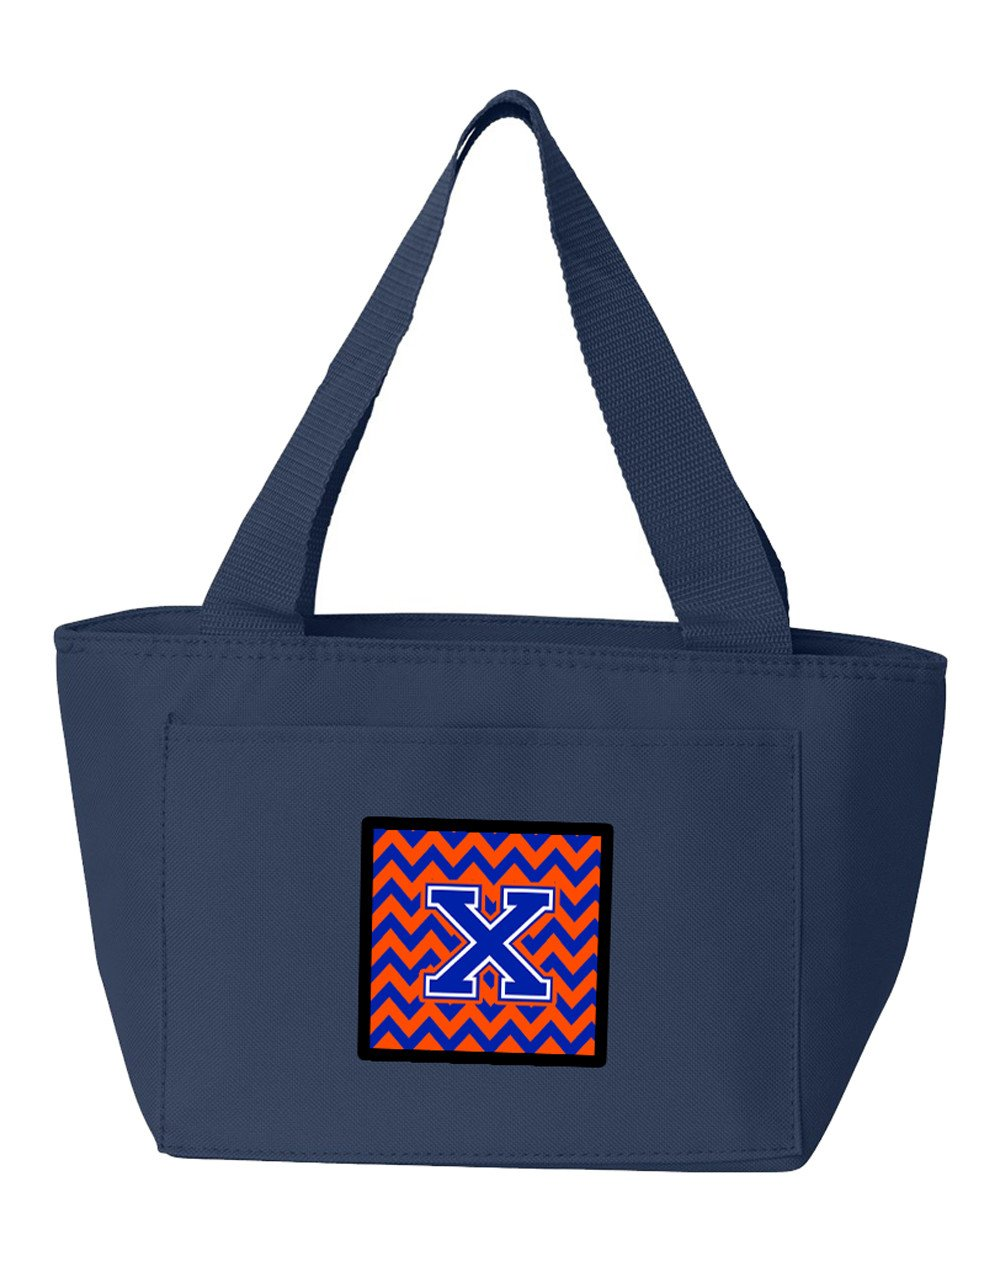 Letter X Chevron Orange and Blue Lunch Bag CJ1044-XNA-8808 by Caroline's Treasures